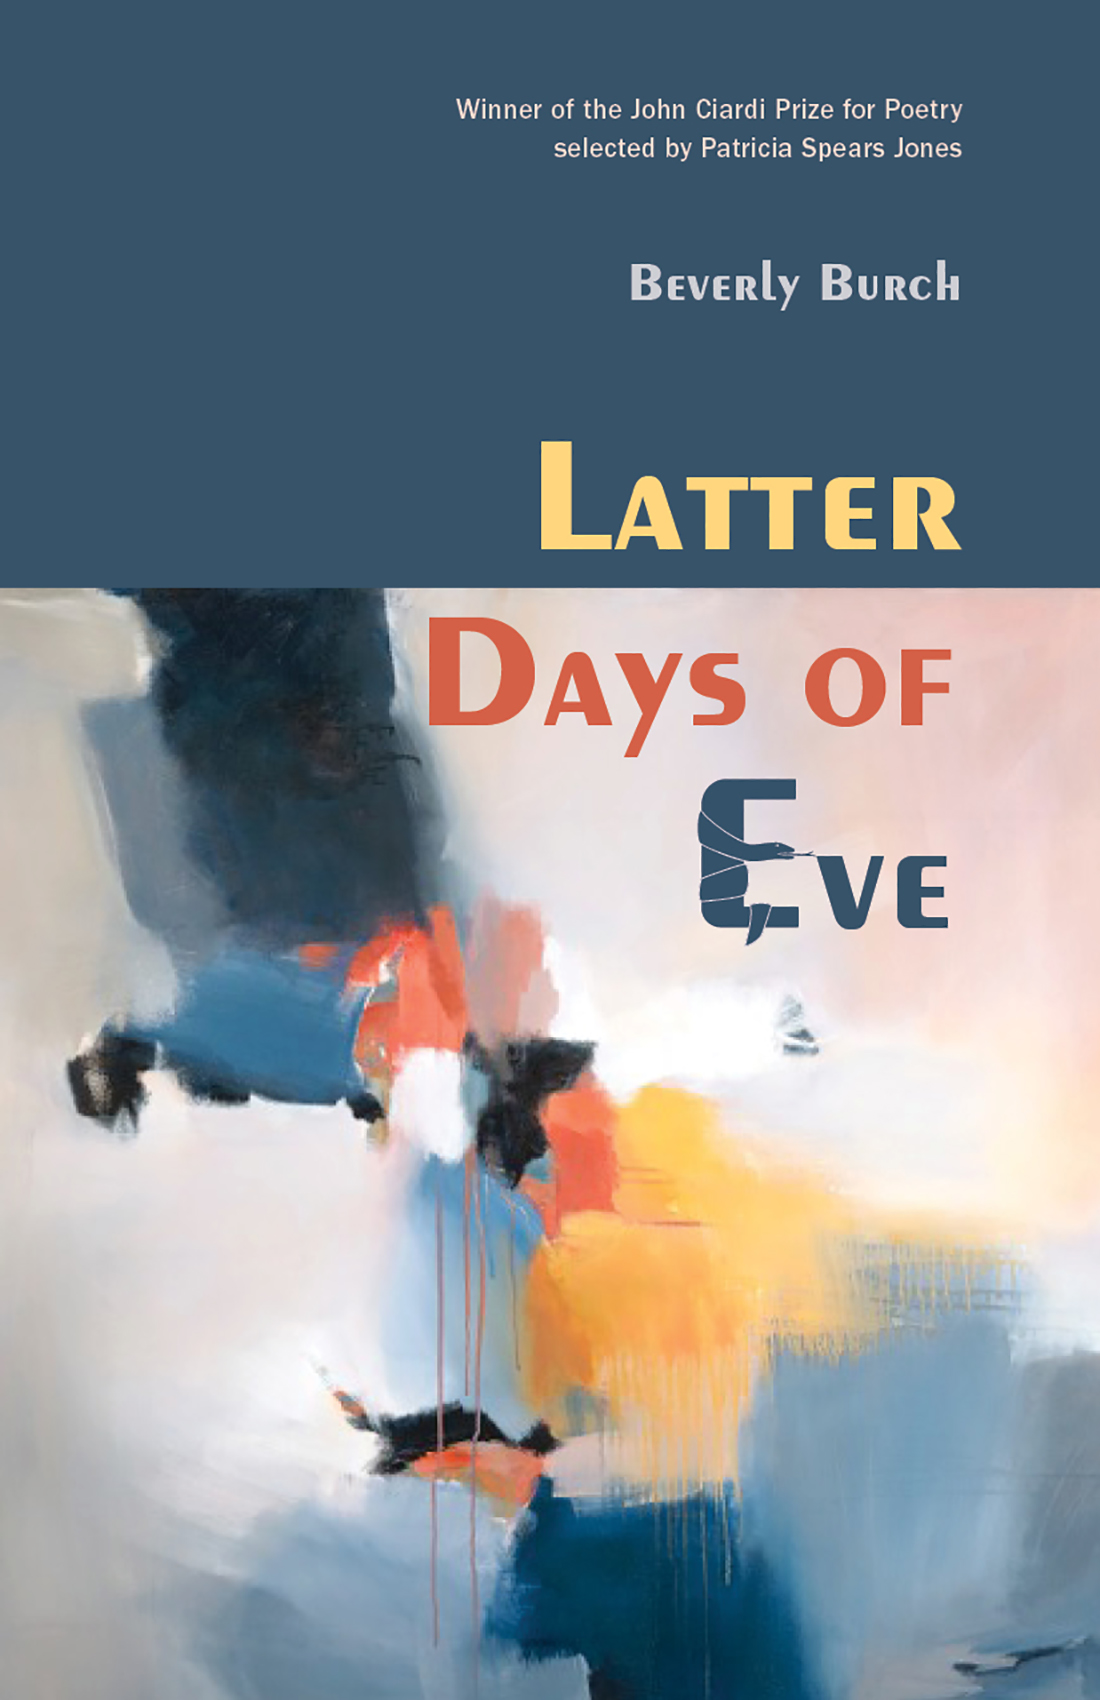 Latter Days of Eve